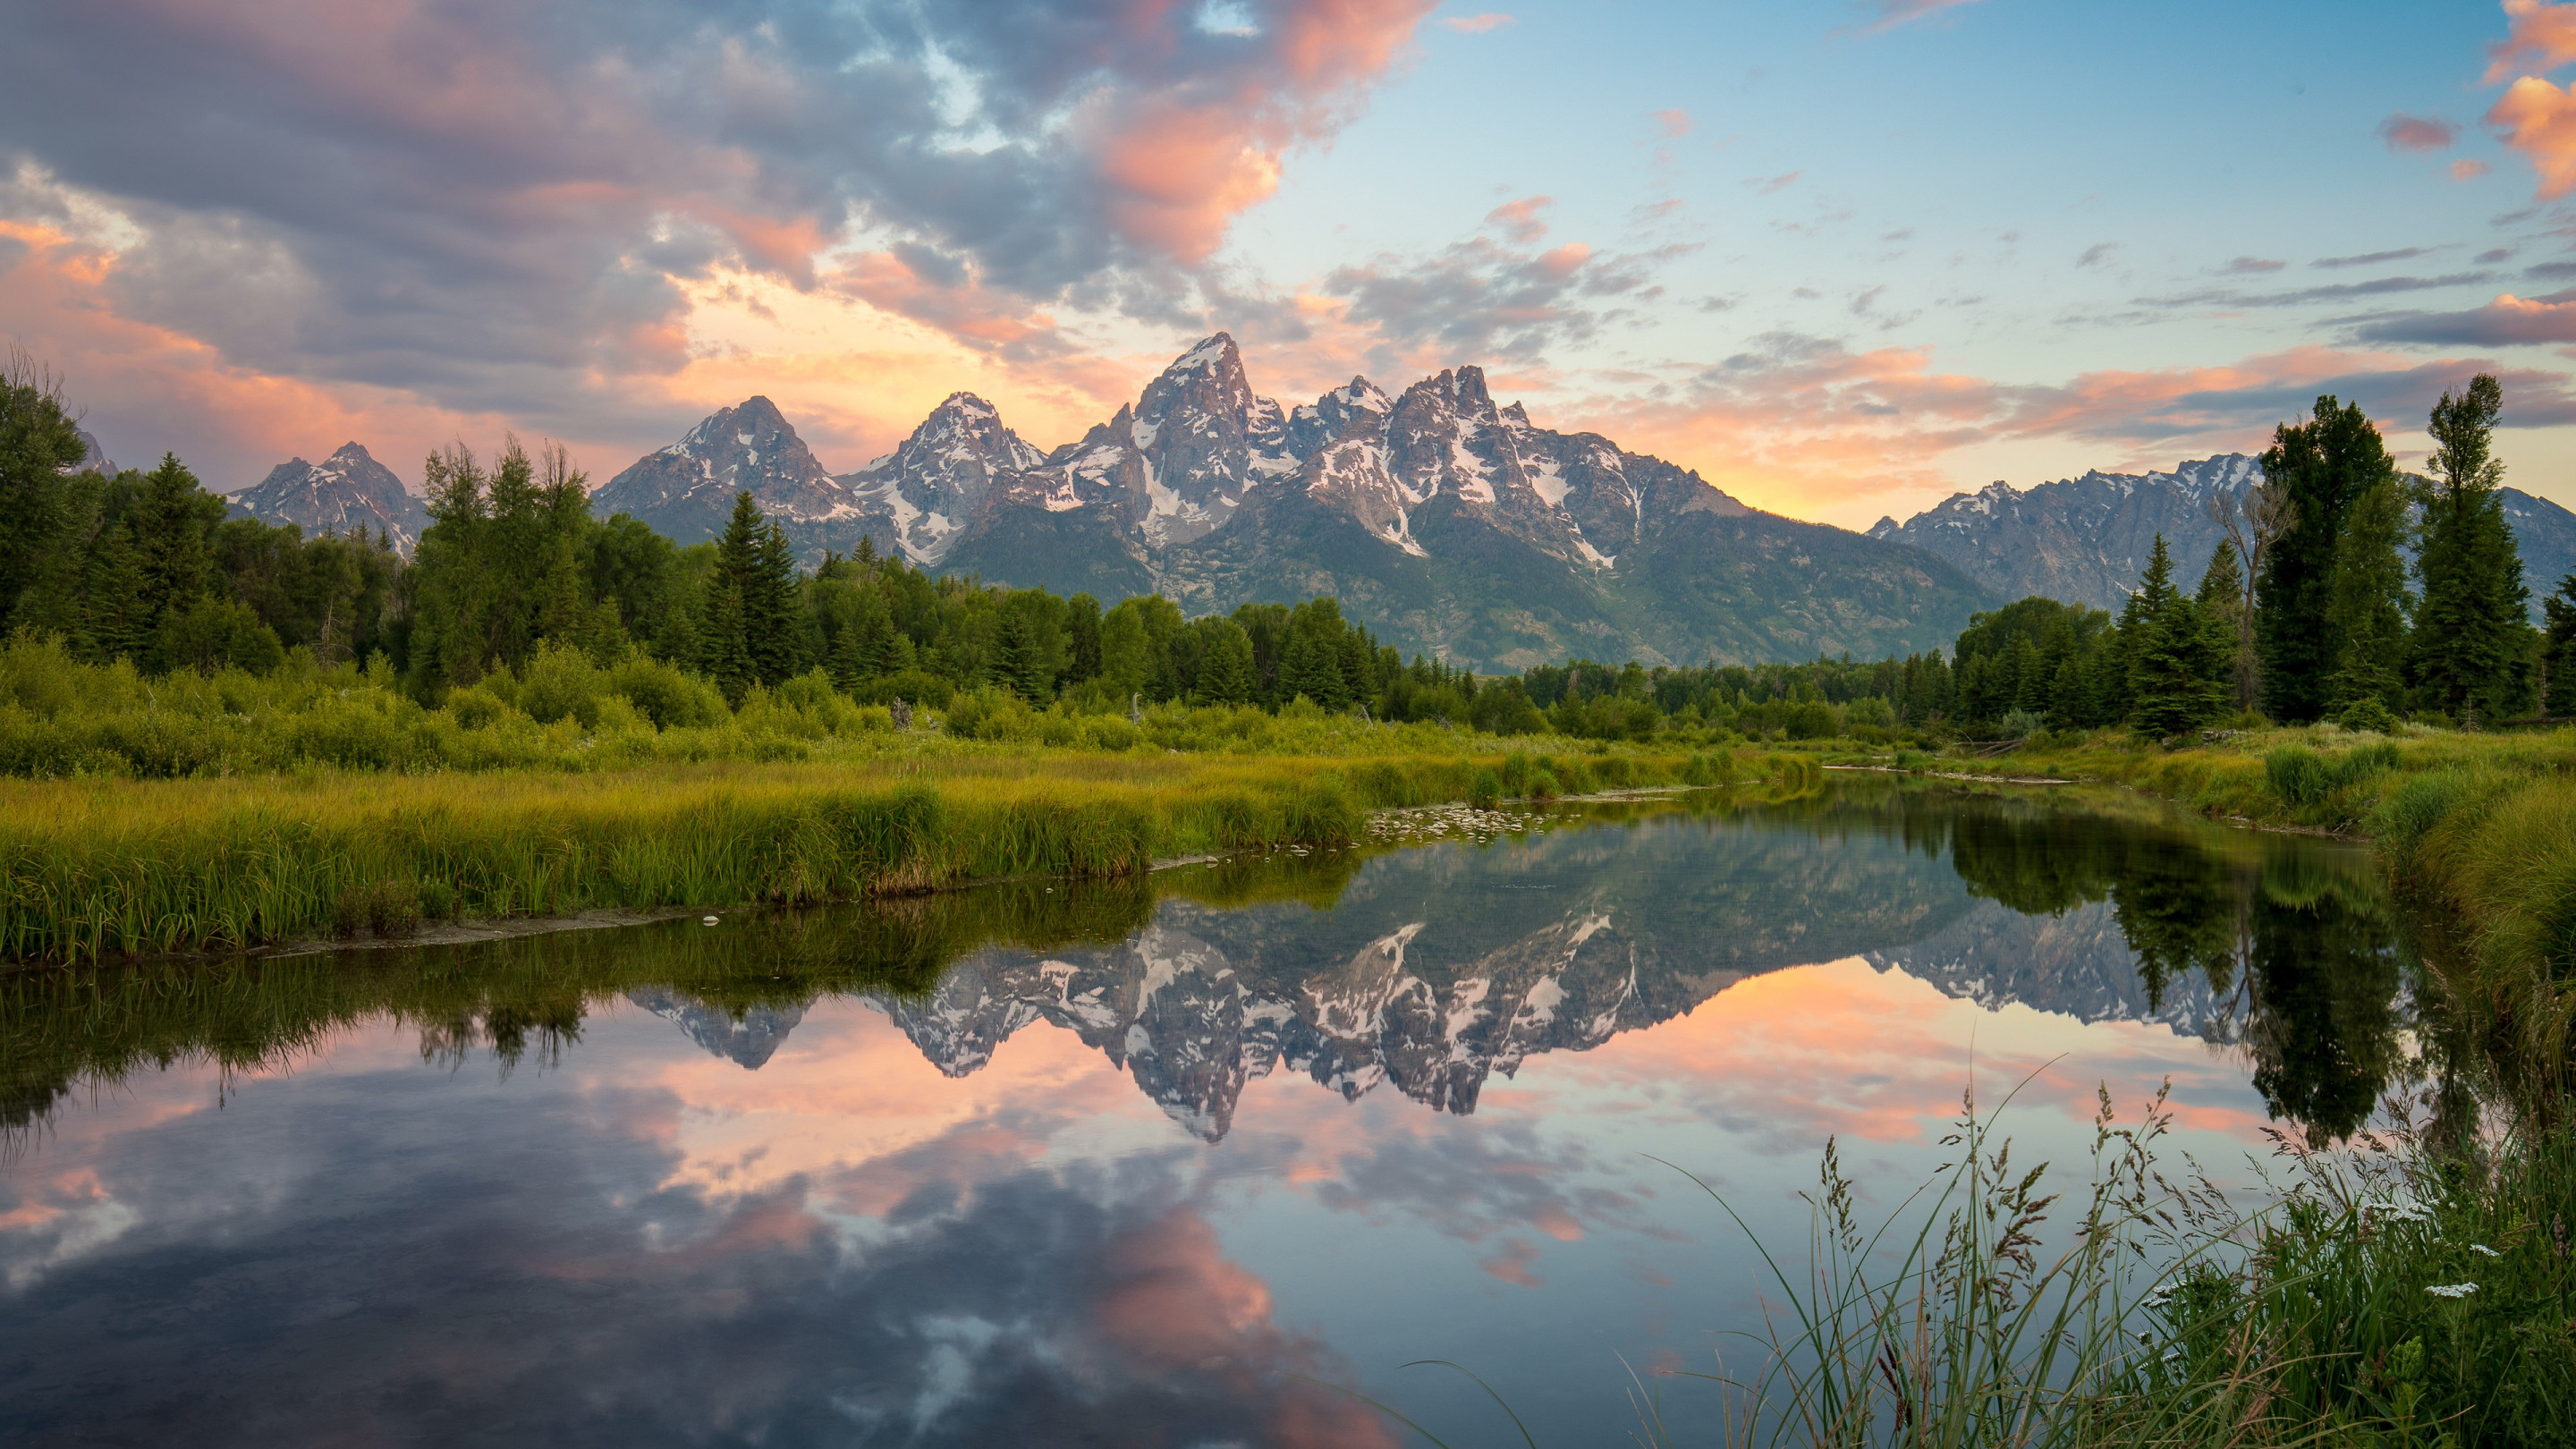 Grand Teton National Park | 2880x1620 wallpaper